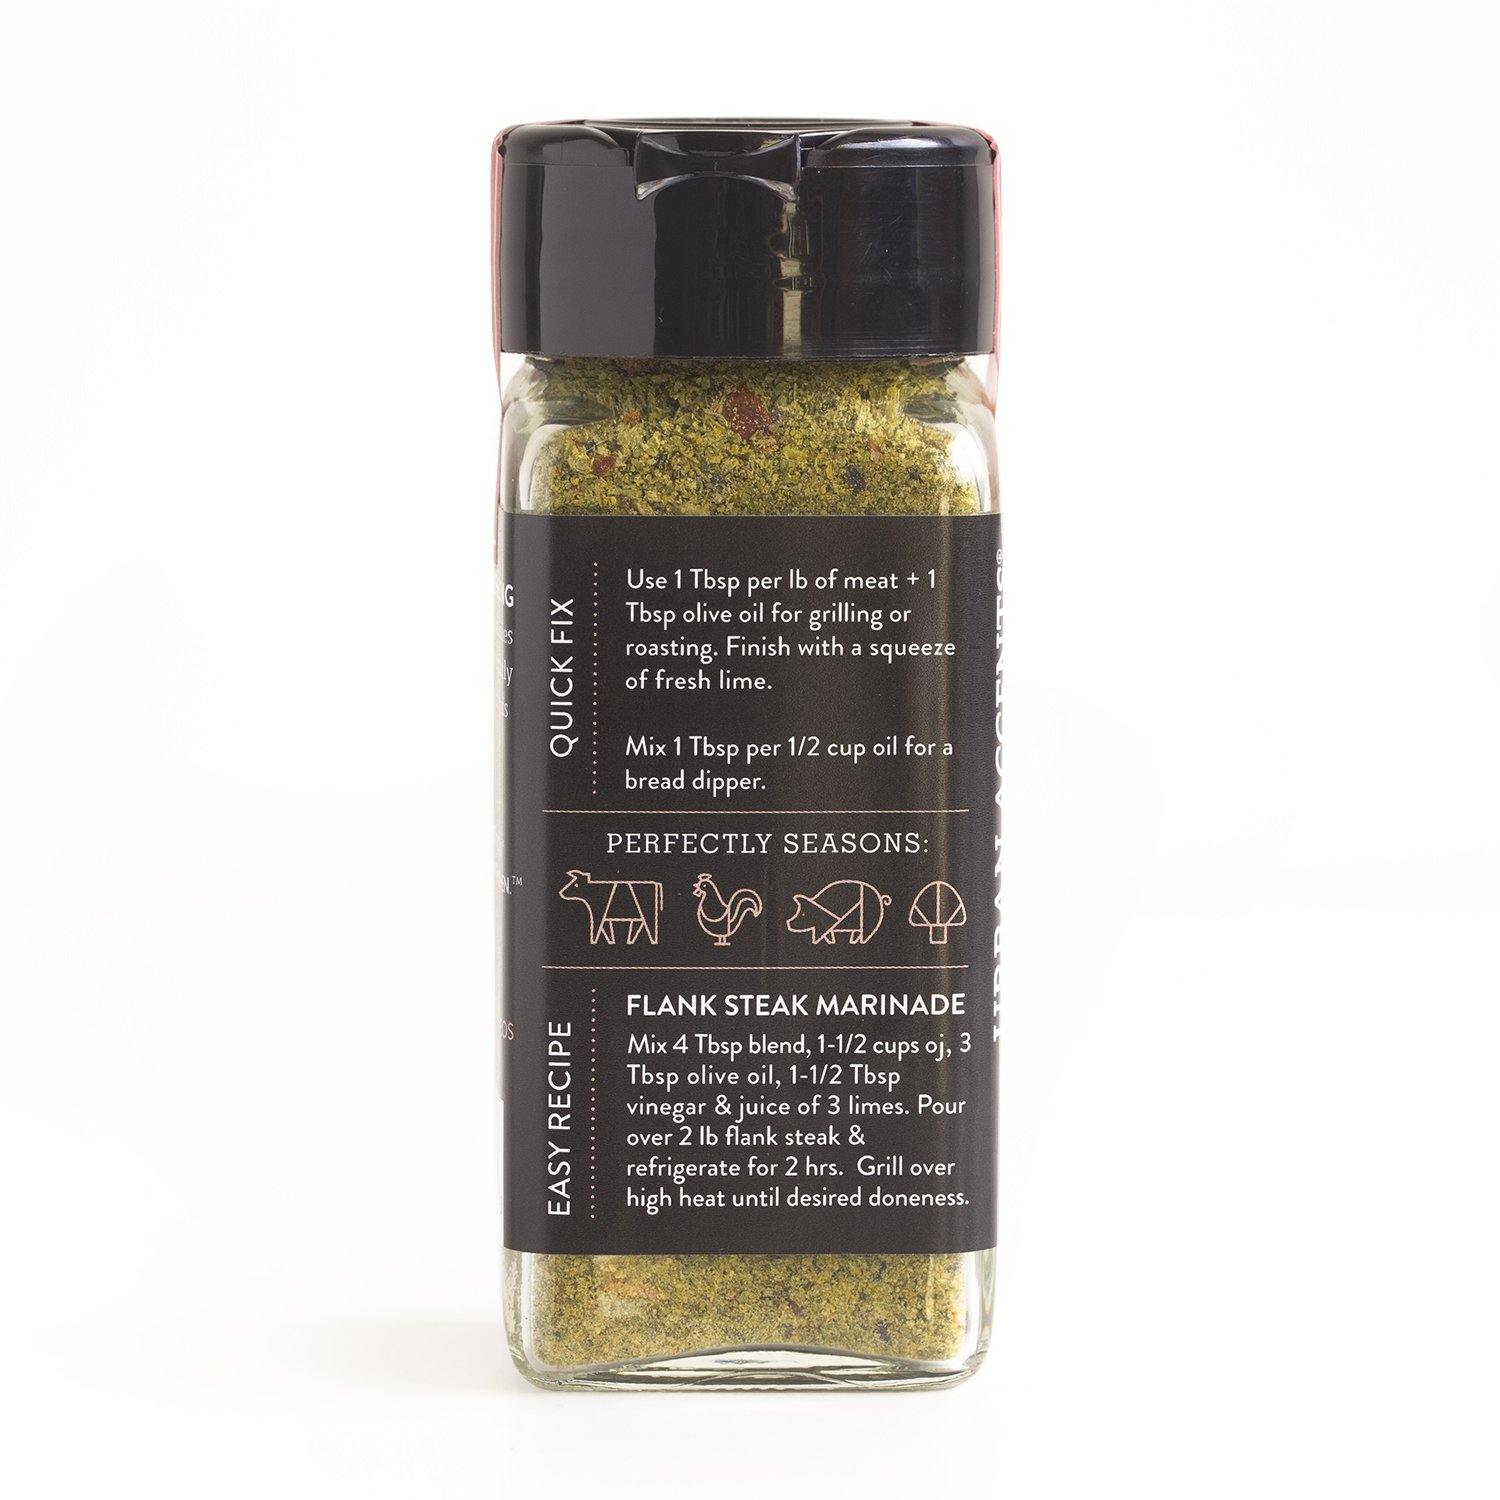 Urban Accents - Argentina Steak Rub - Spice Blend